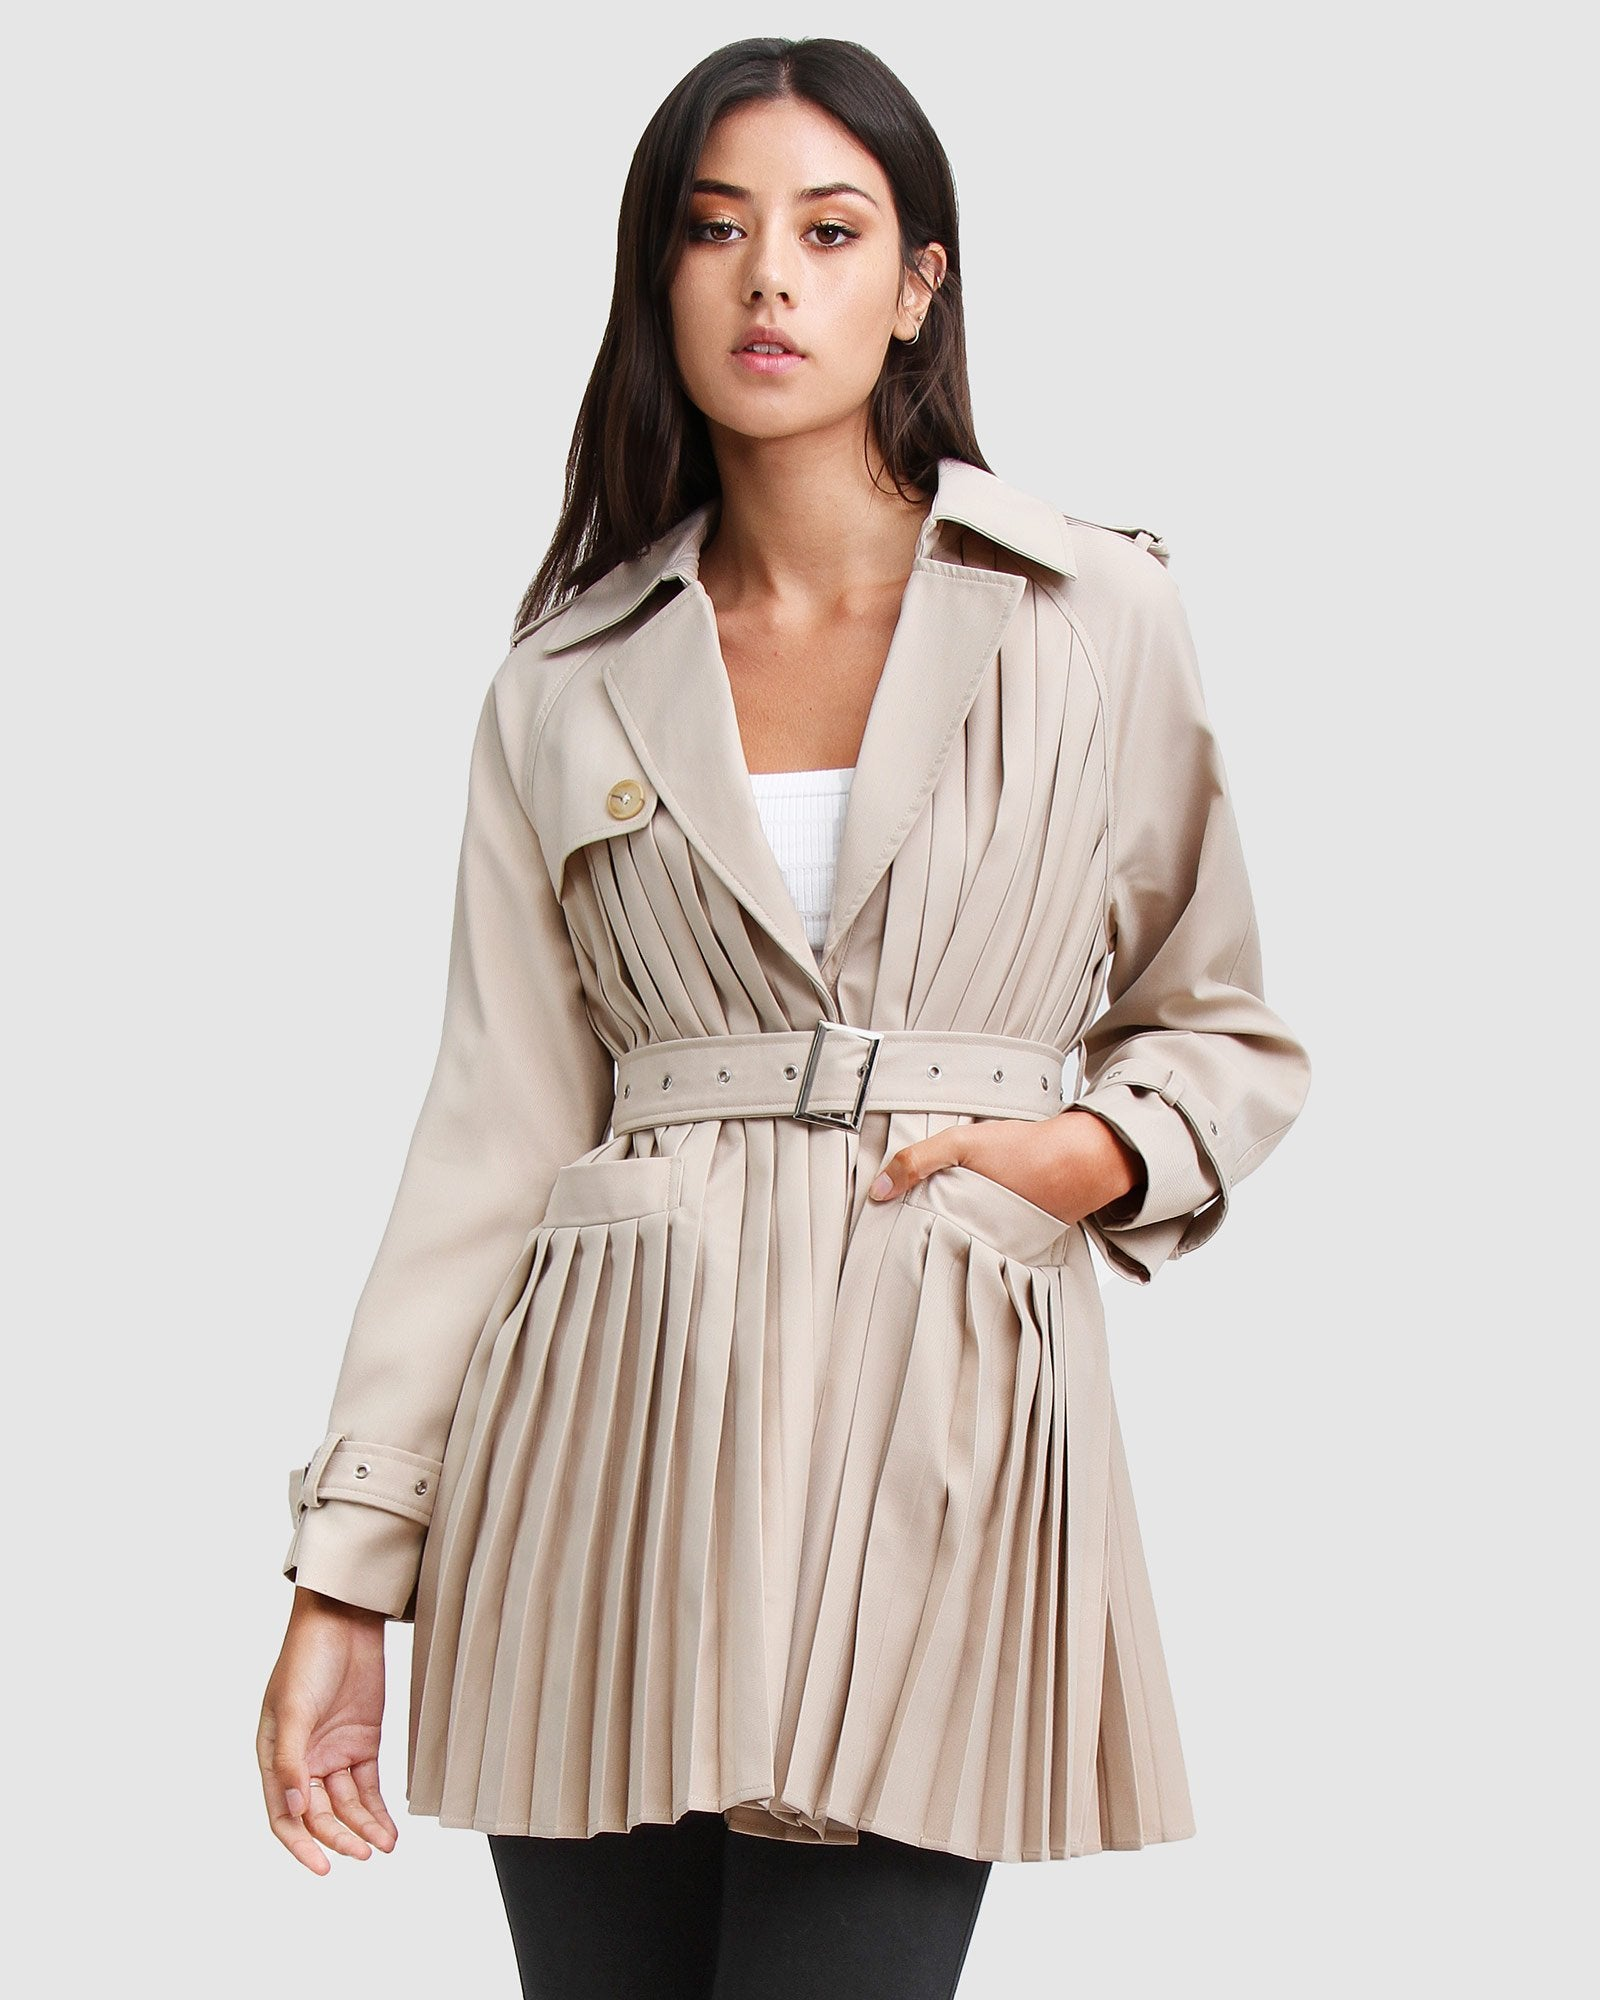 Wish You Were Mine Belted Jacket  - Beige